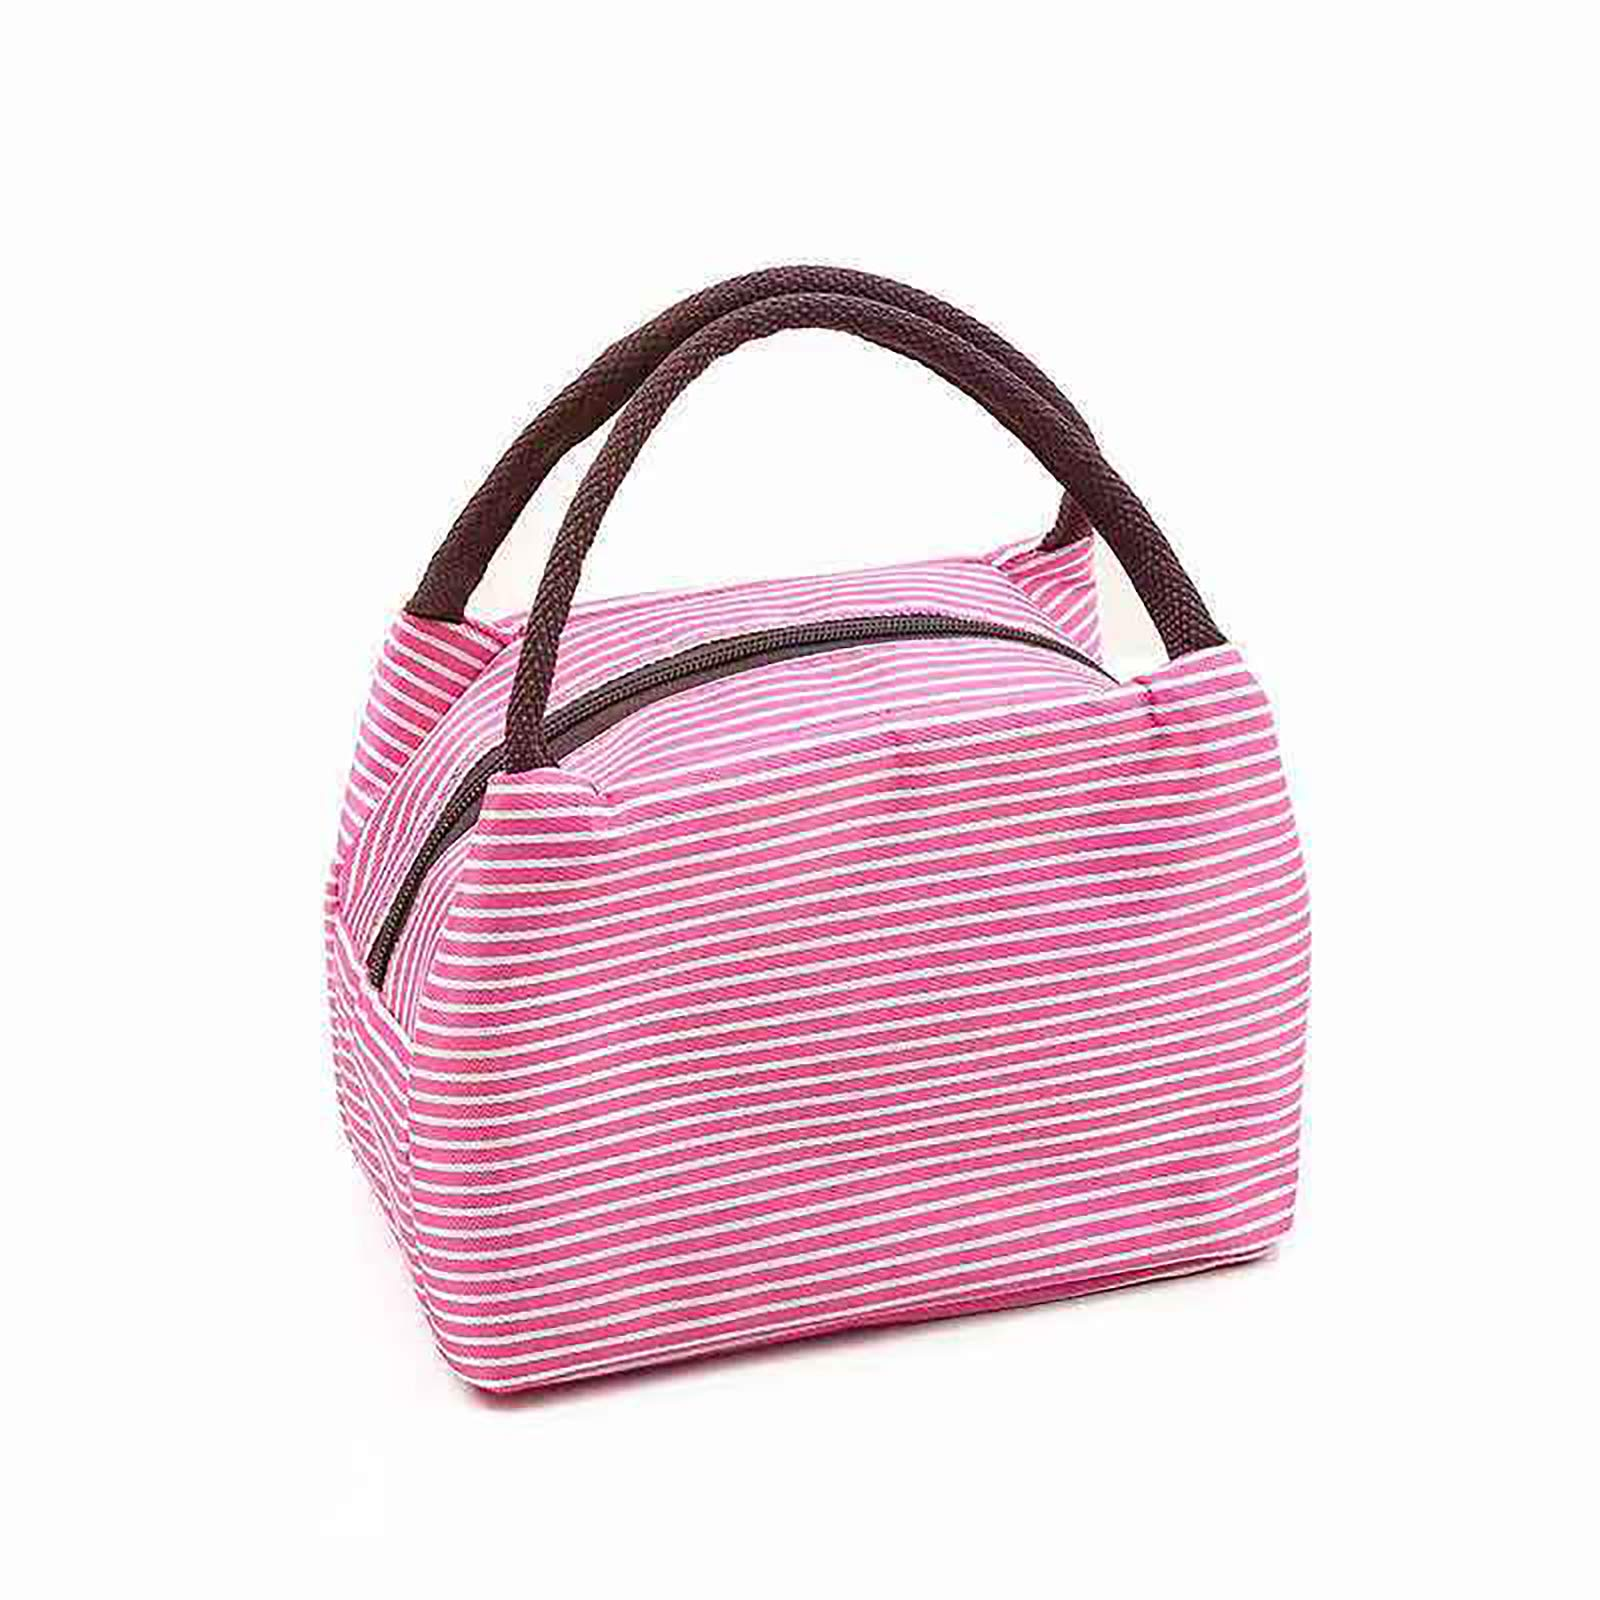 YXZFZ Reusable Insulated Lunch Bag Cooler Tote Box with Front Pocket Zipper